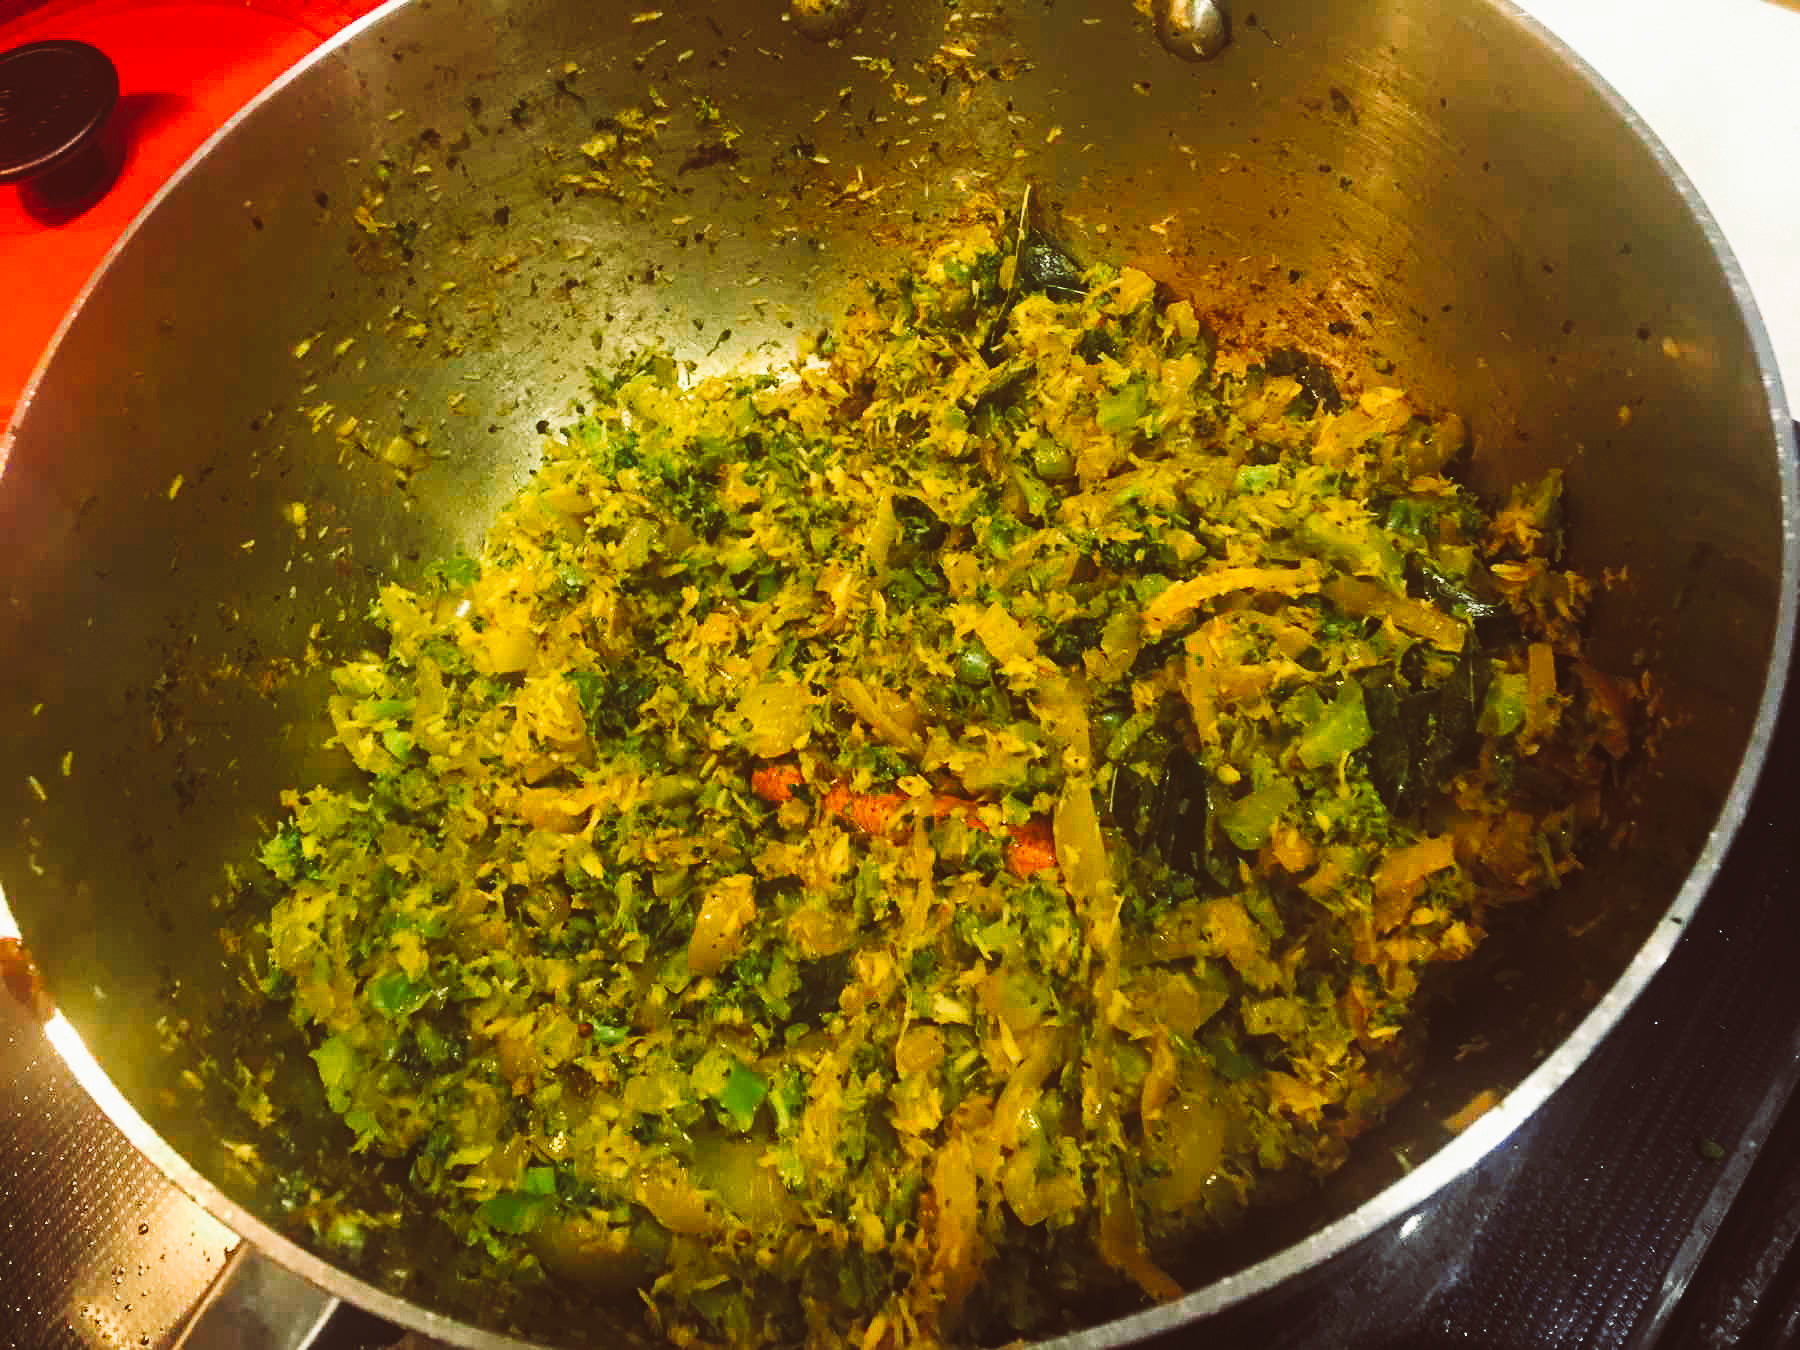 Broccoli Varai in the pan